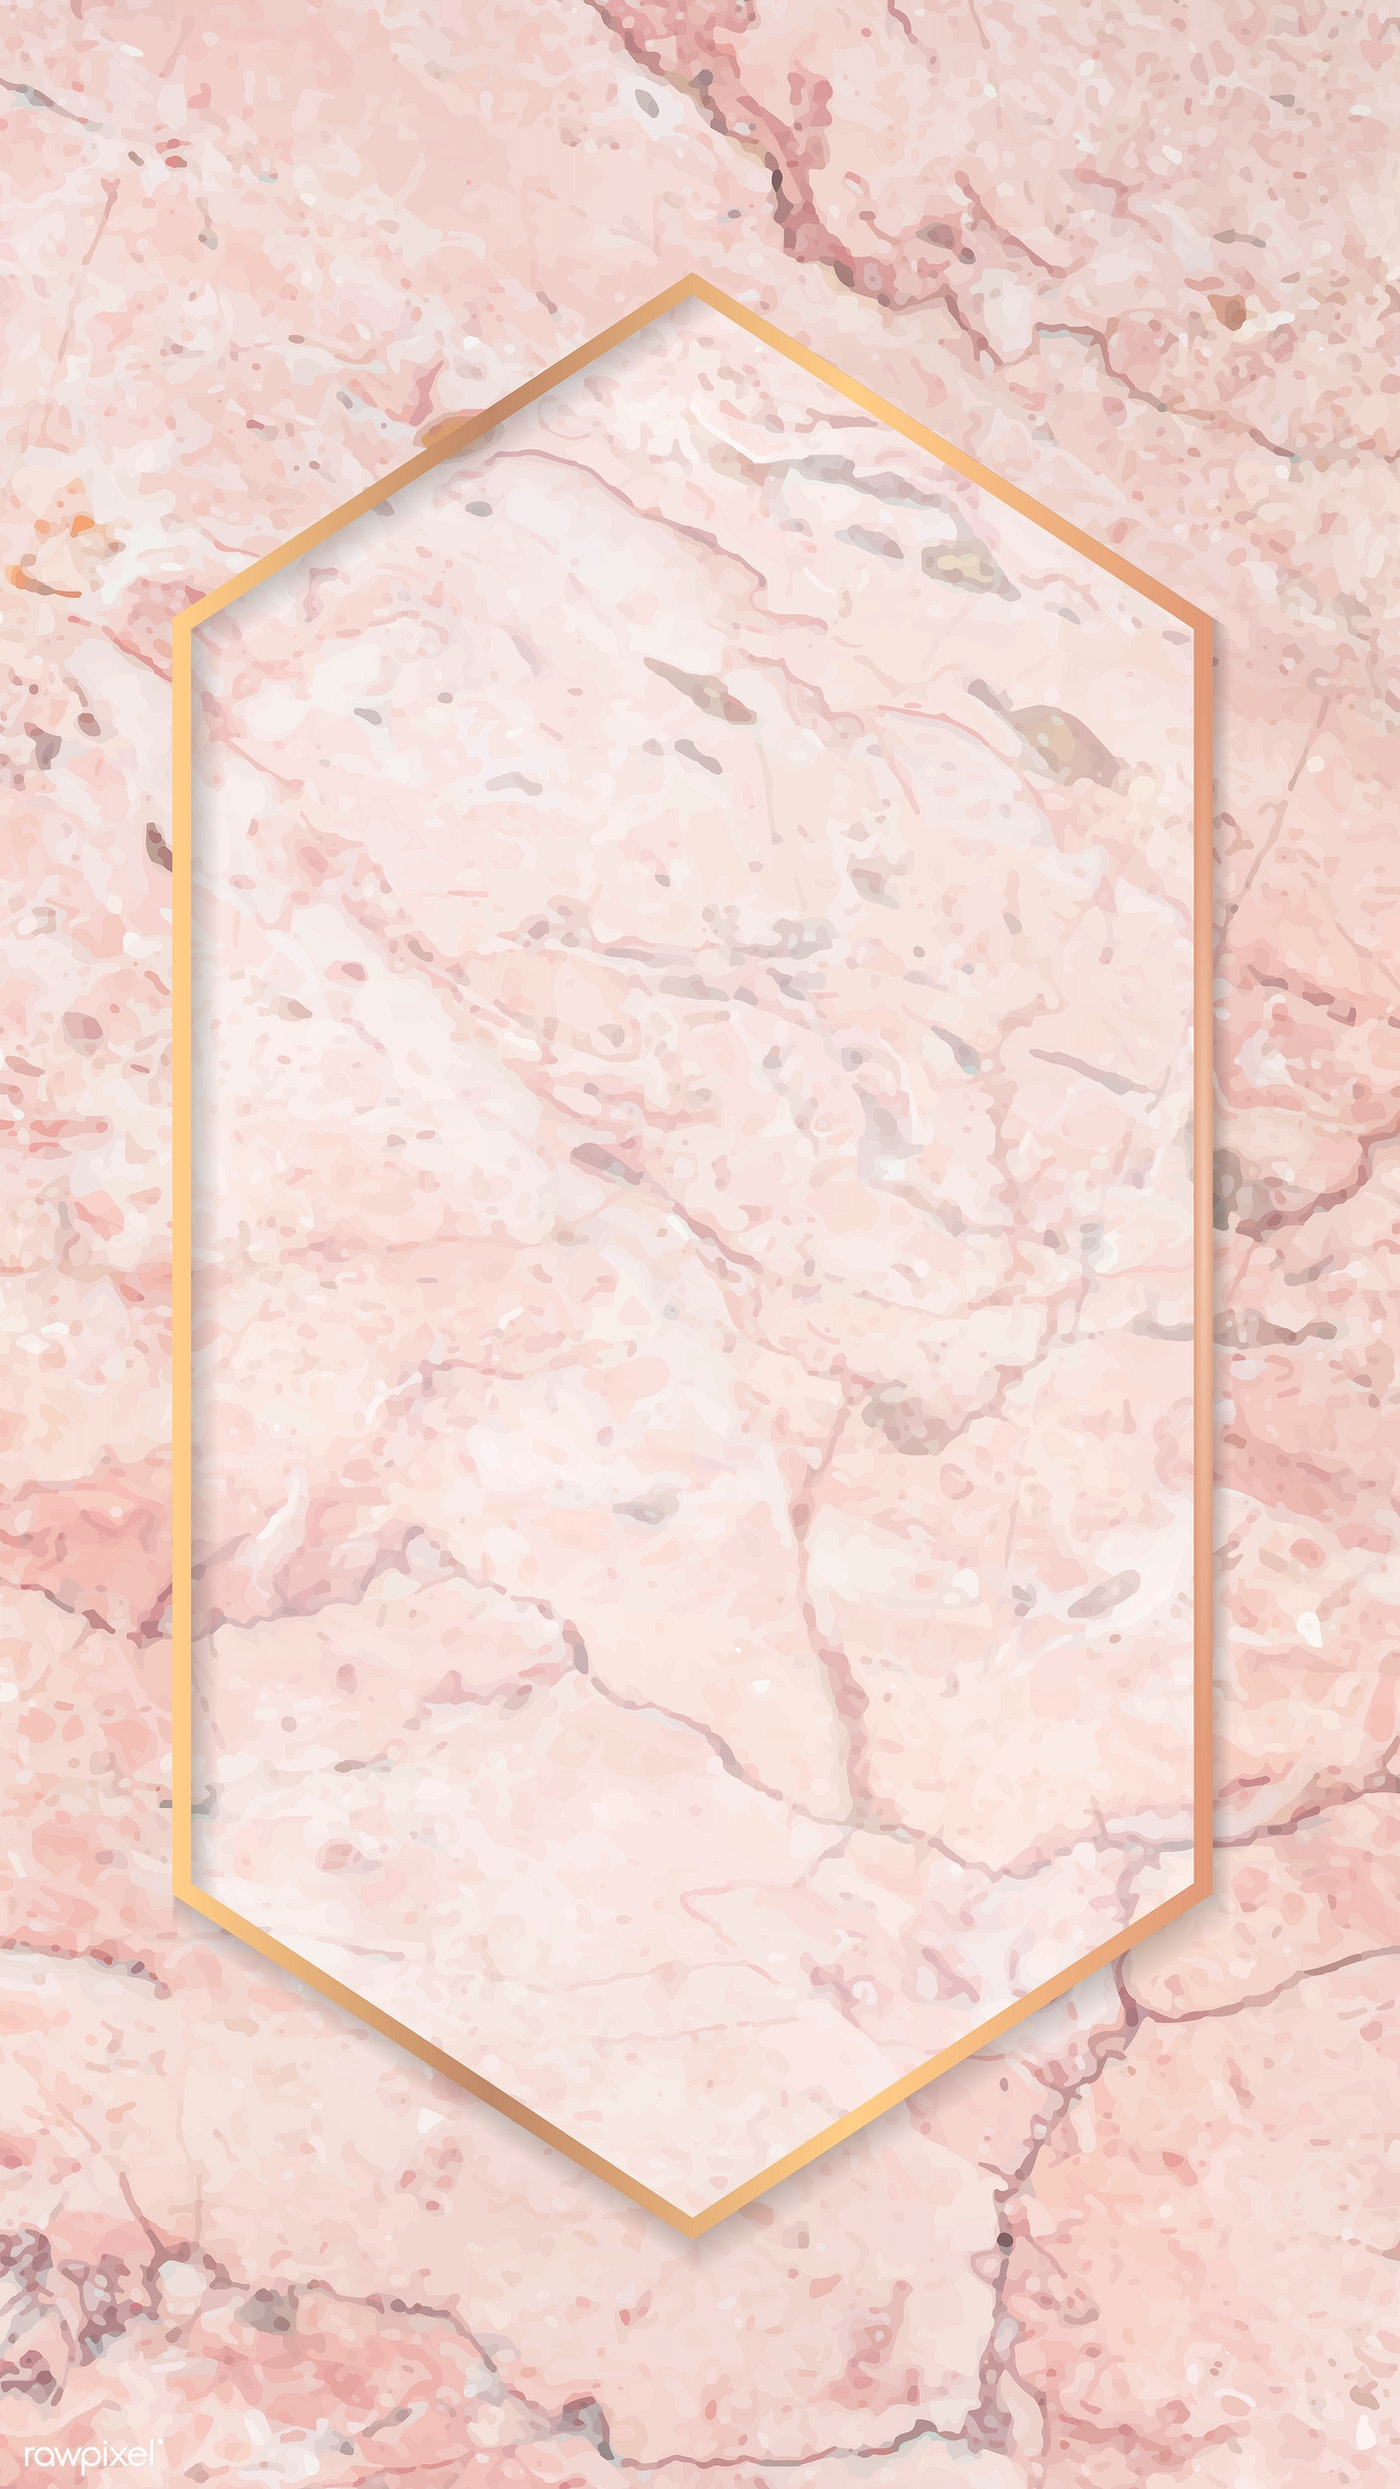 Download Premium Vector Of Hexagon Gold Frame On Pink Mobile Phone